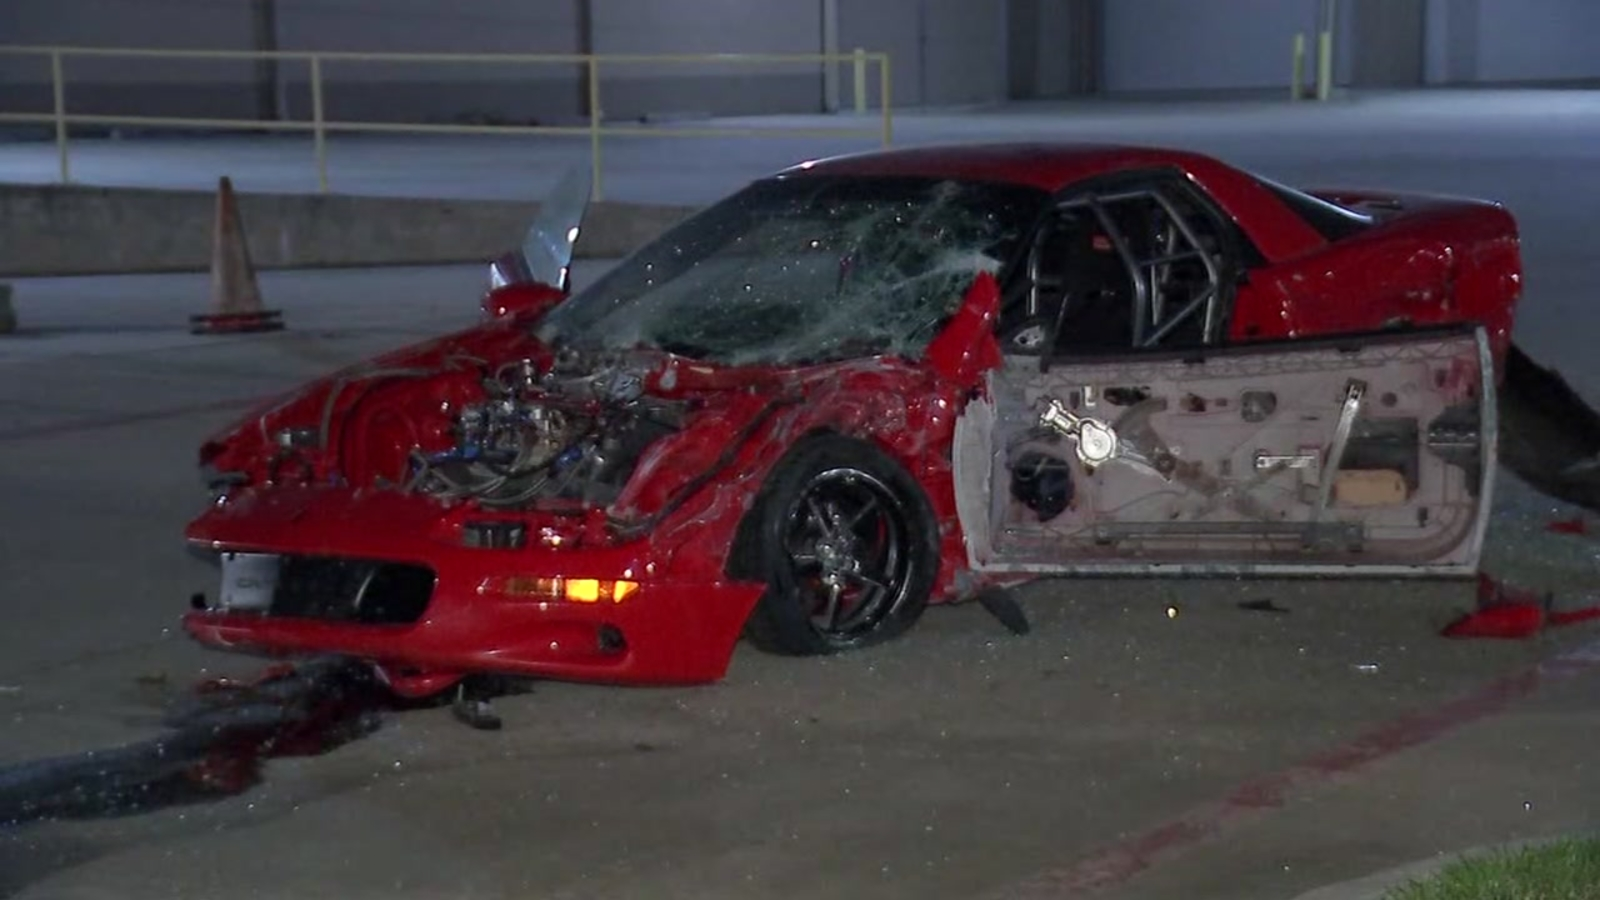 Son of Ronnie Pace of 'Street Outlaws' charged in street racing incident | abc13.com